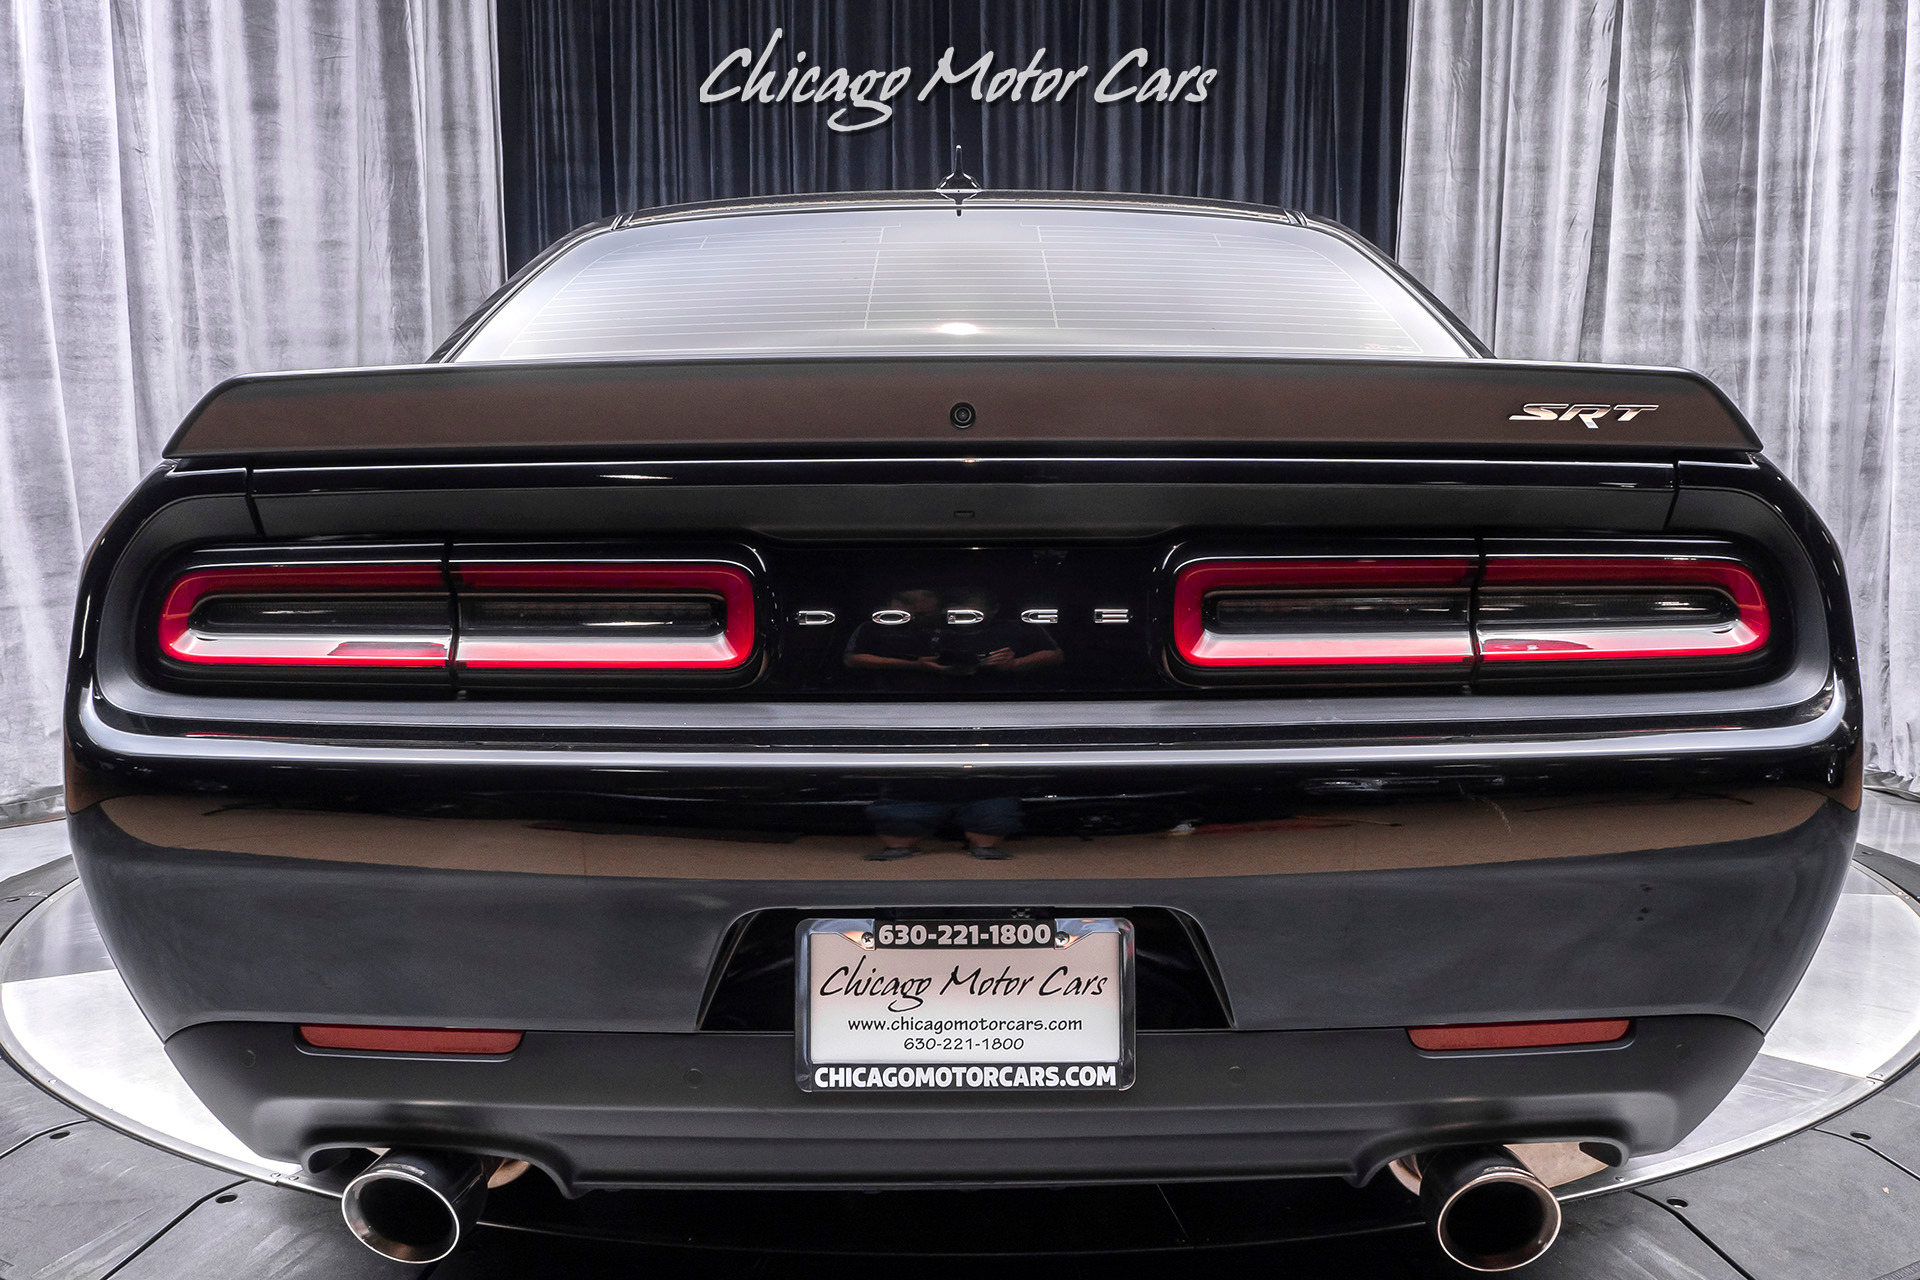 Used-2015-Dodge-Challenger-SRT-Hellcat-Coupe-OVER-800-HORSEPOWER-8-SPEED-AUTOMATIC